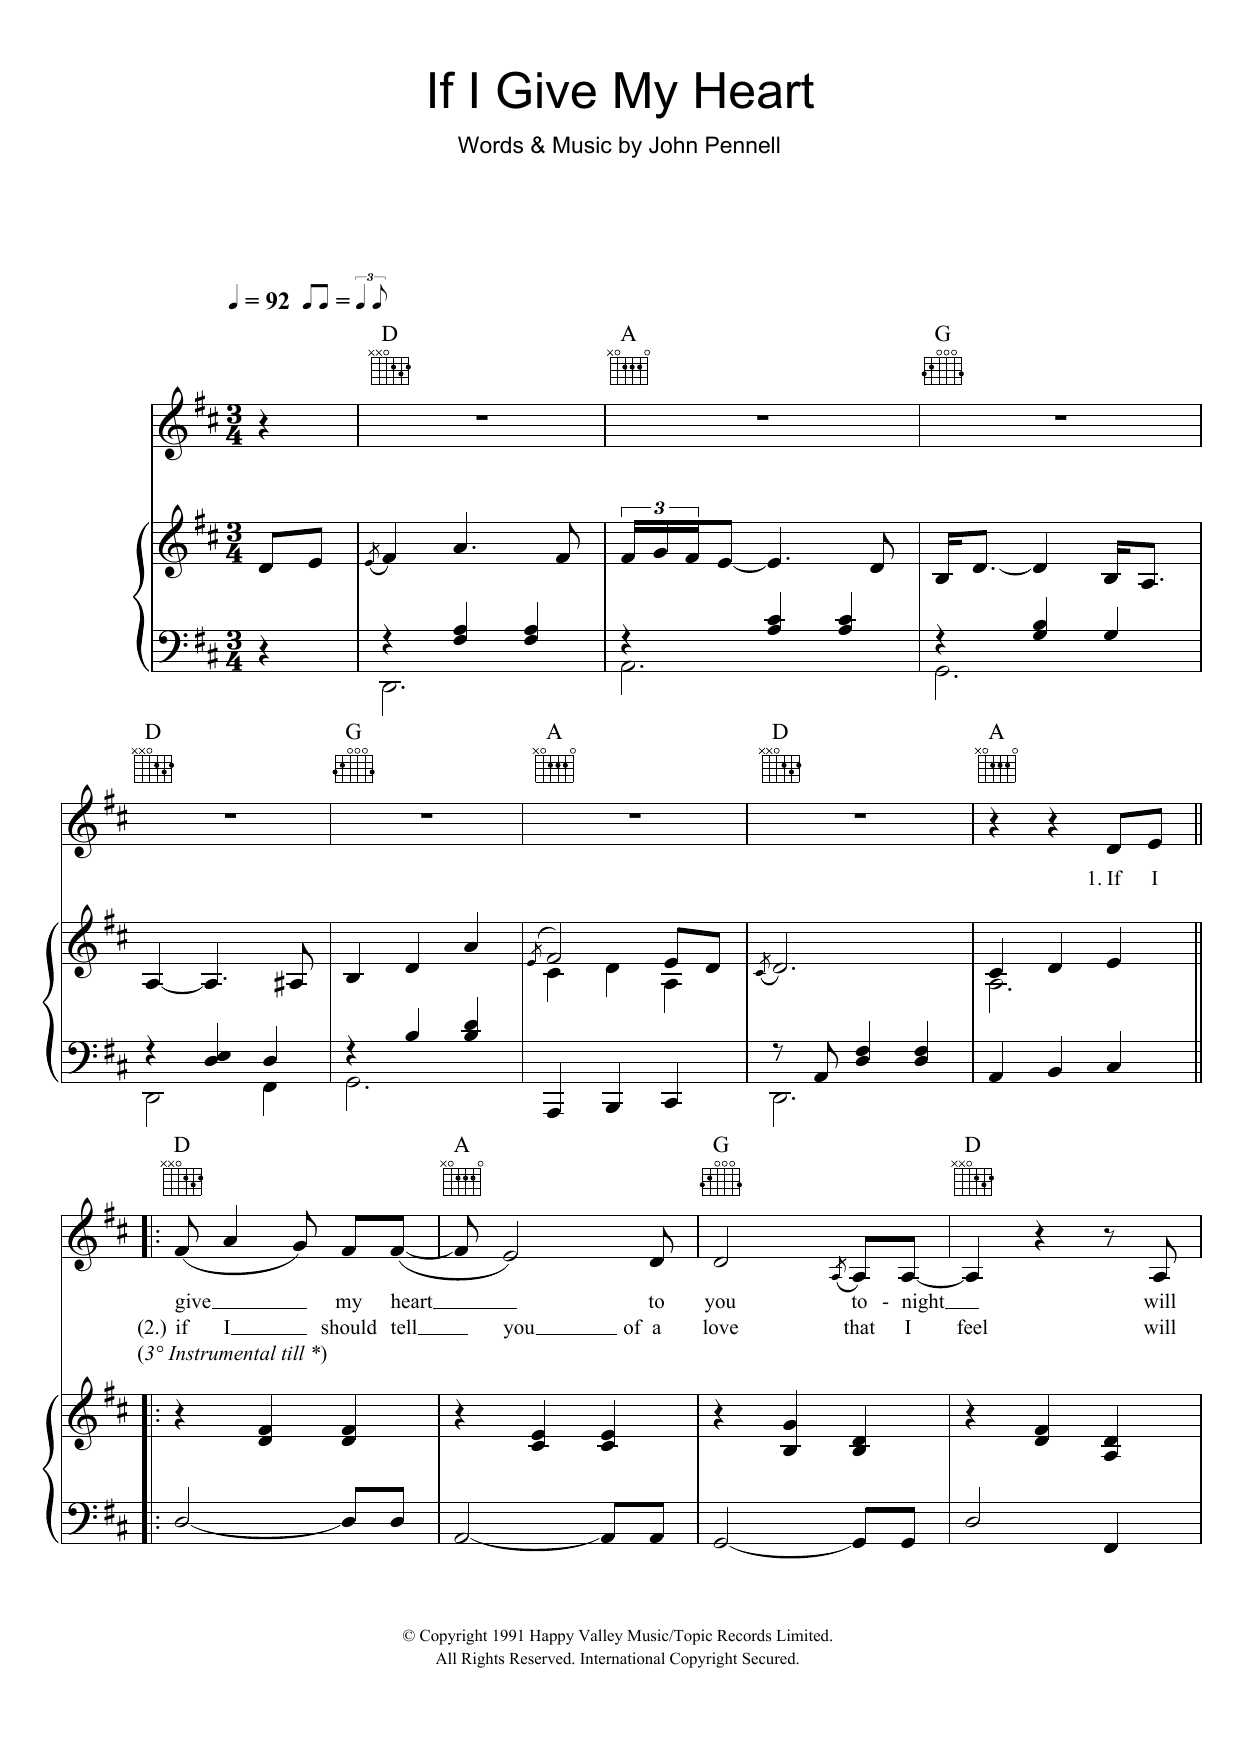 If I Give My Heart (Piano, Vocal & Guitar)